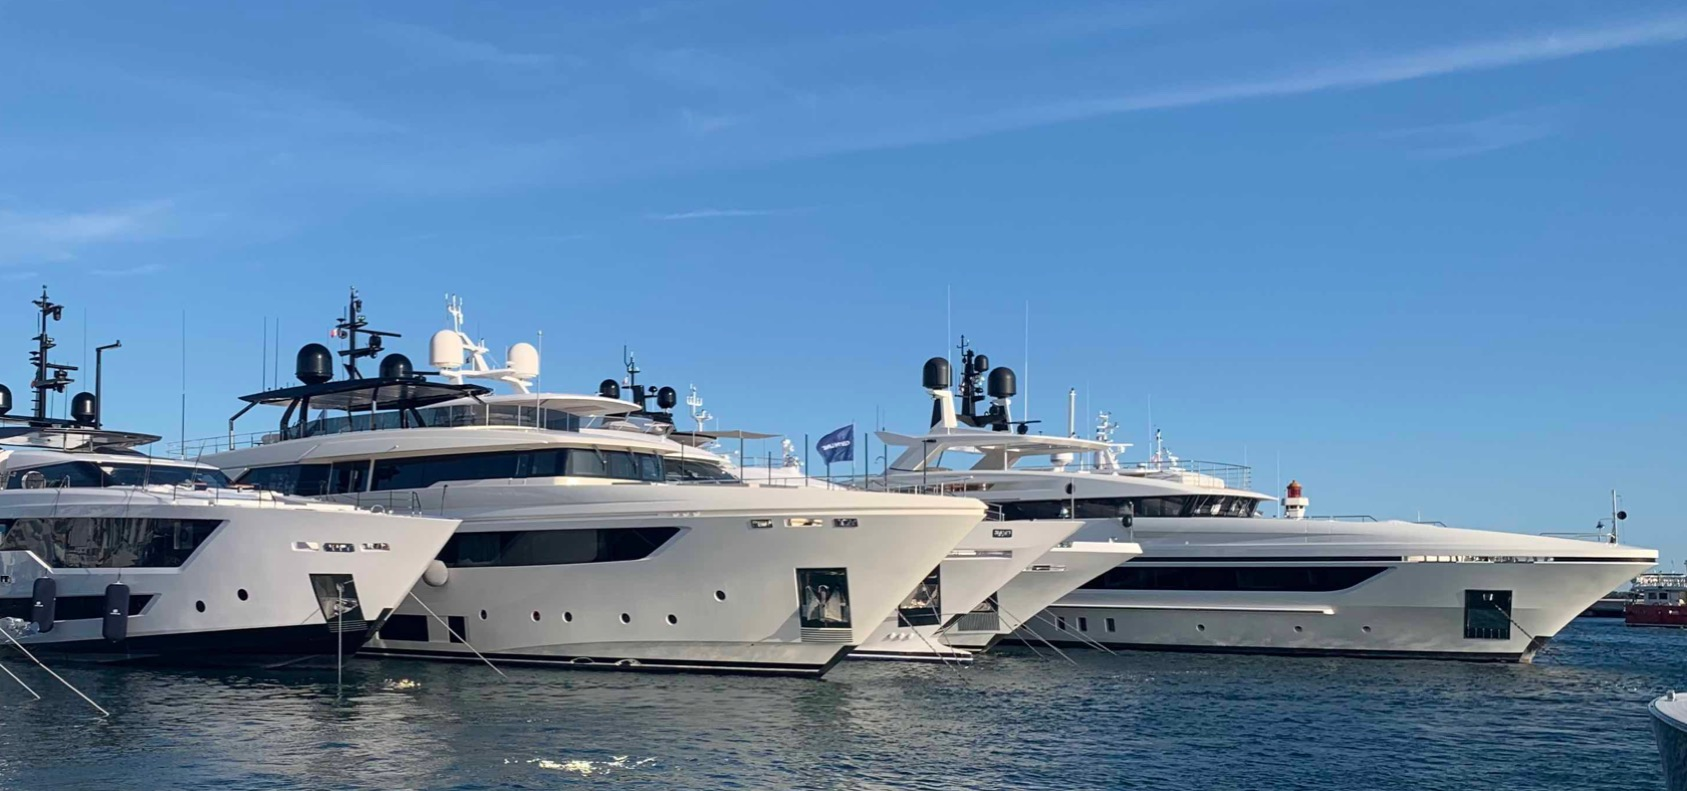 The Complete Trip Essentials Packing Checklist When Chartering a Yacht